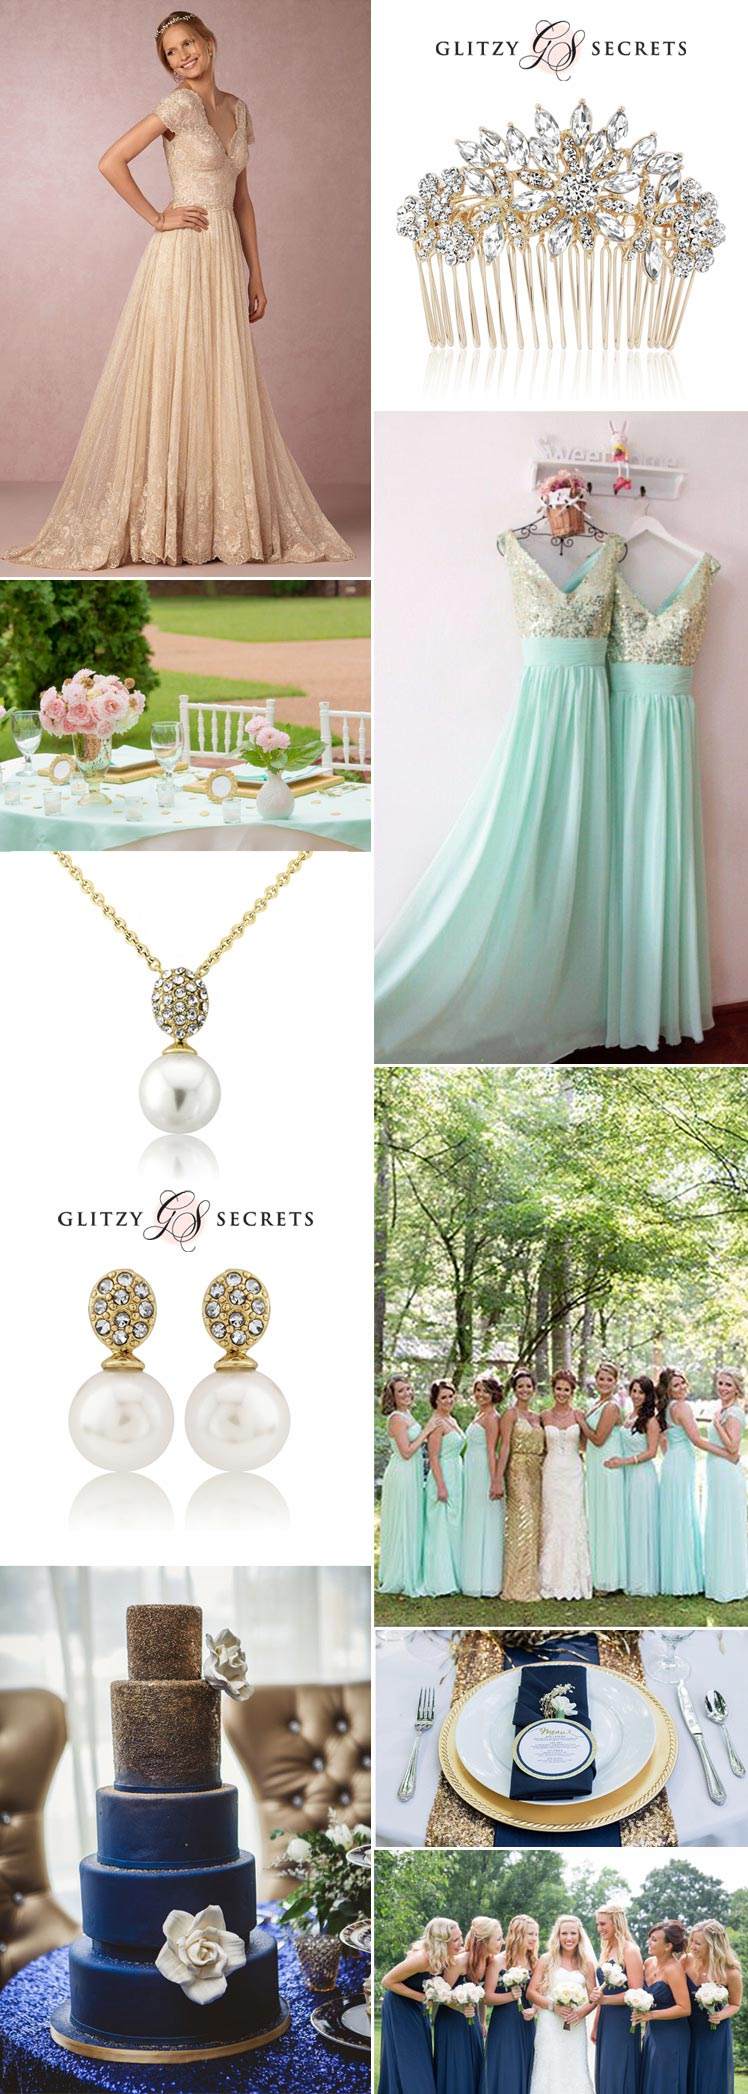 choosing gold wedding accessories